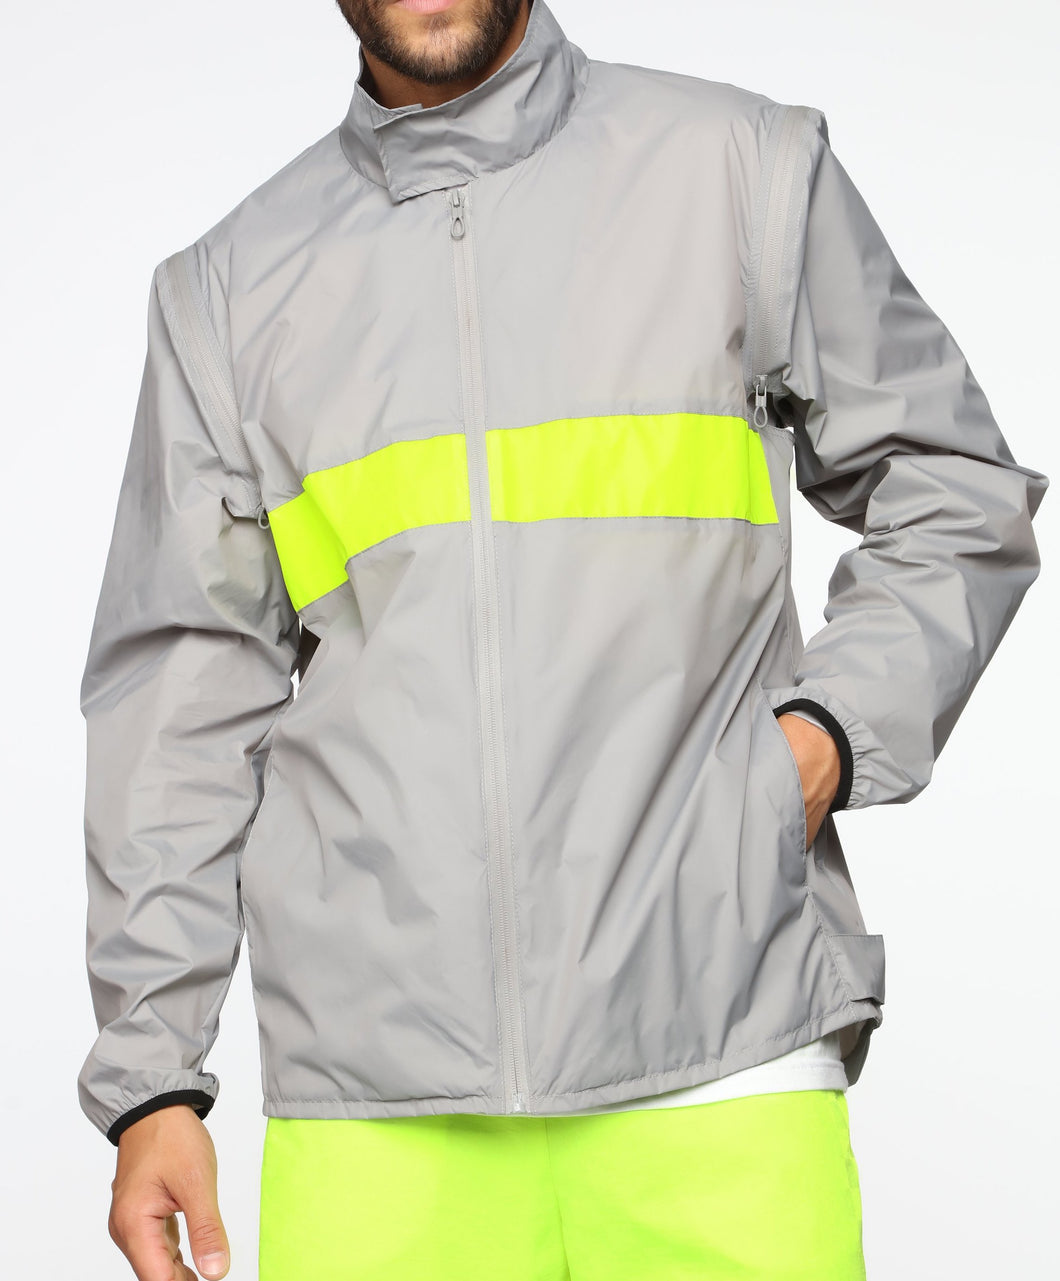 Reflective Jacket with Detachable Sleeves